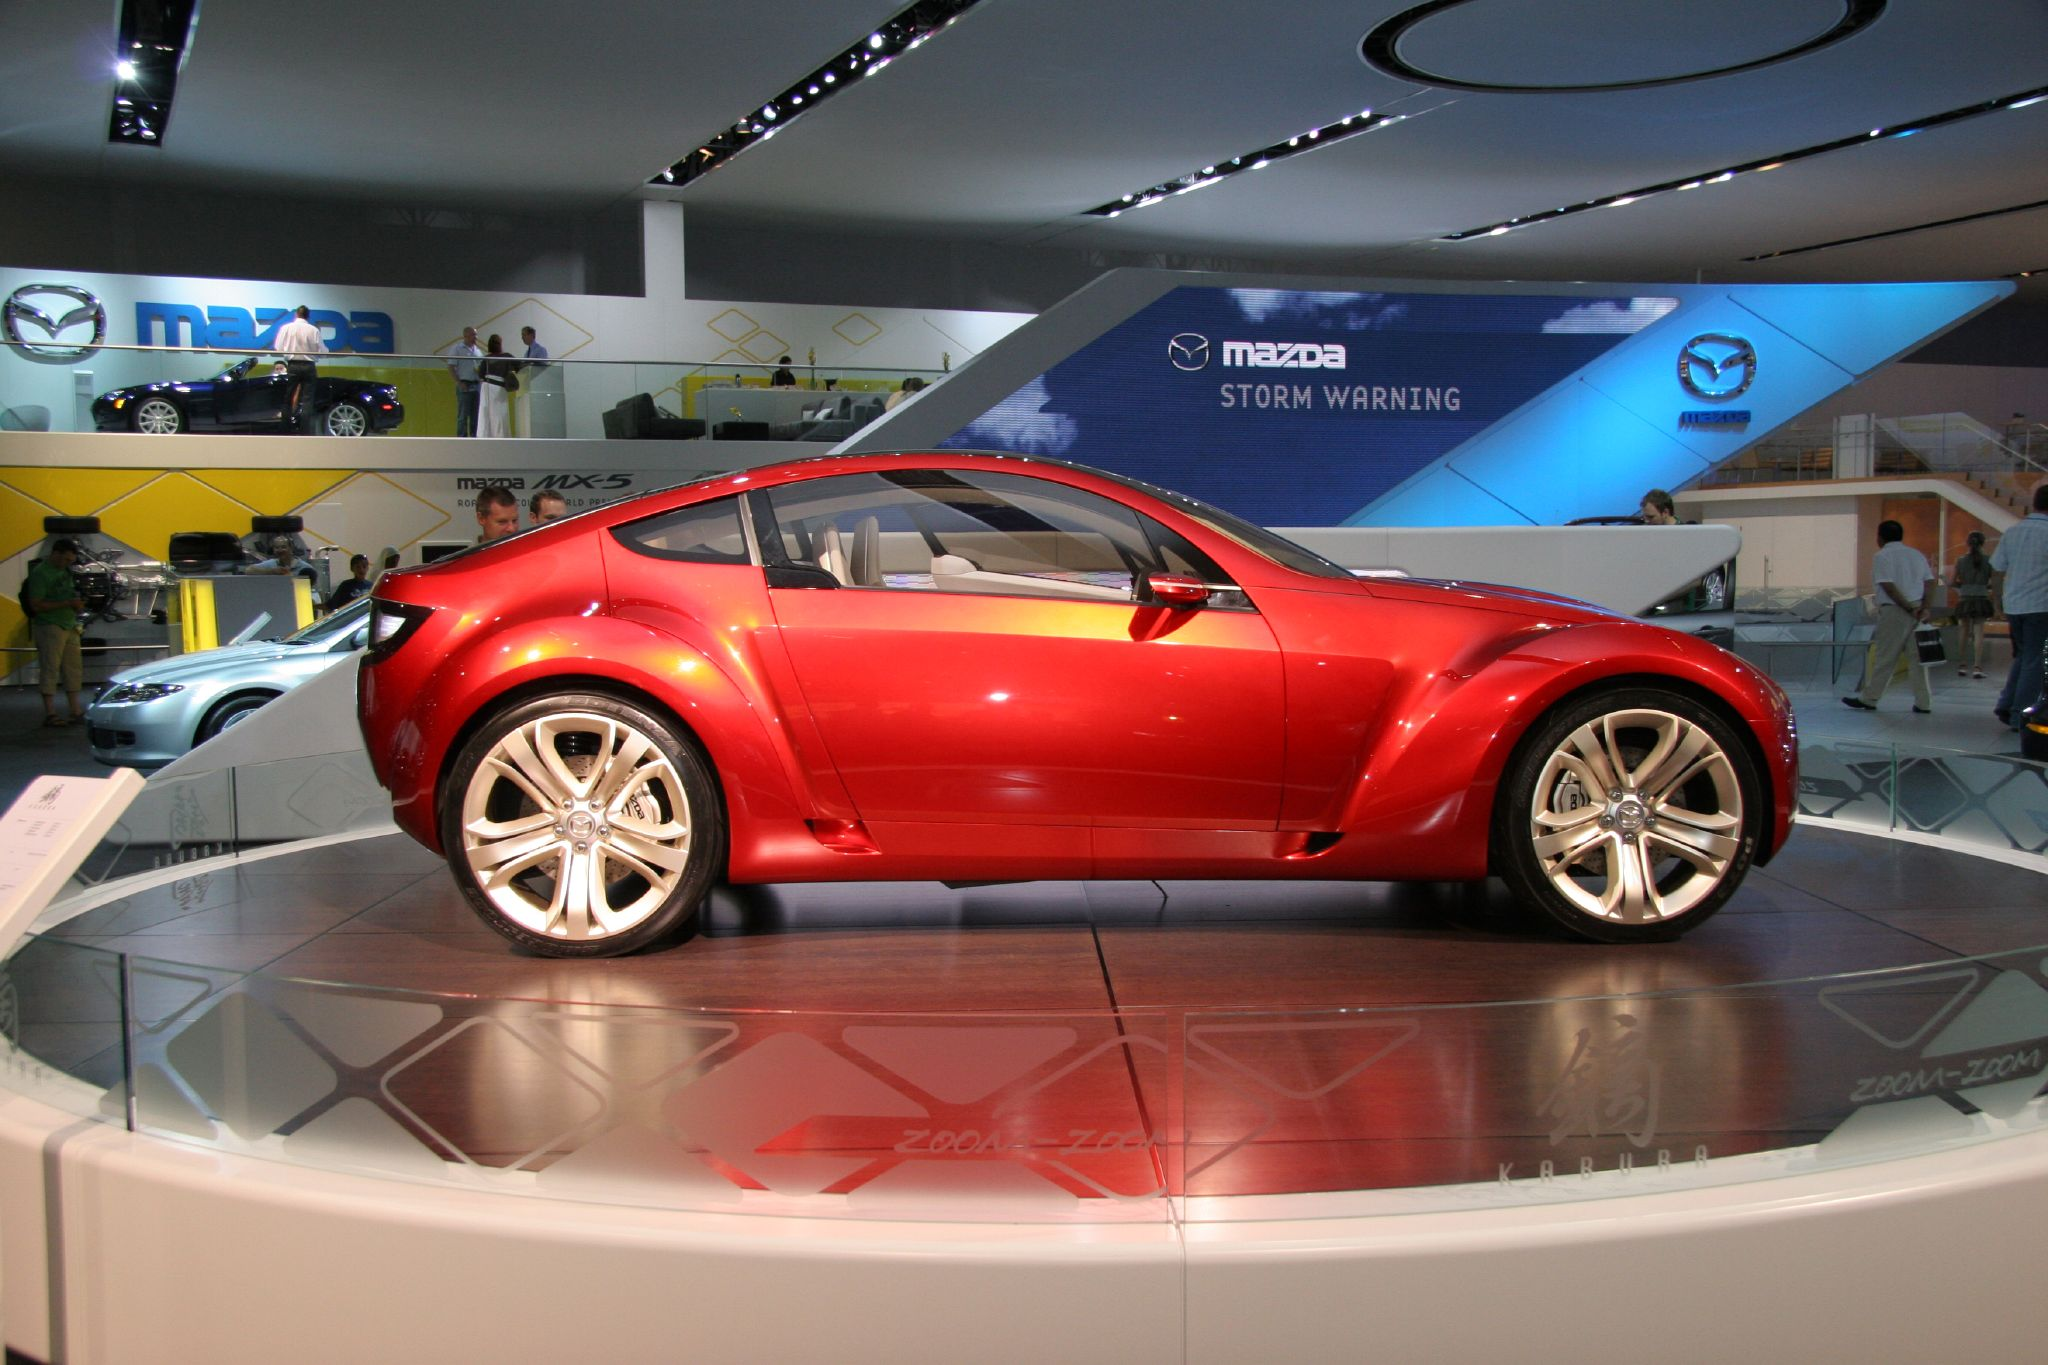 https://upload.wikimedia.org/wikipedia/commons/4/4f/Mazda_Kabura_Concept_at_British_International_Motor_Show_2006.jpg